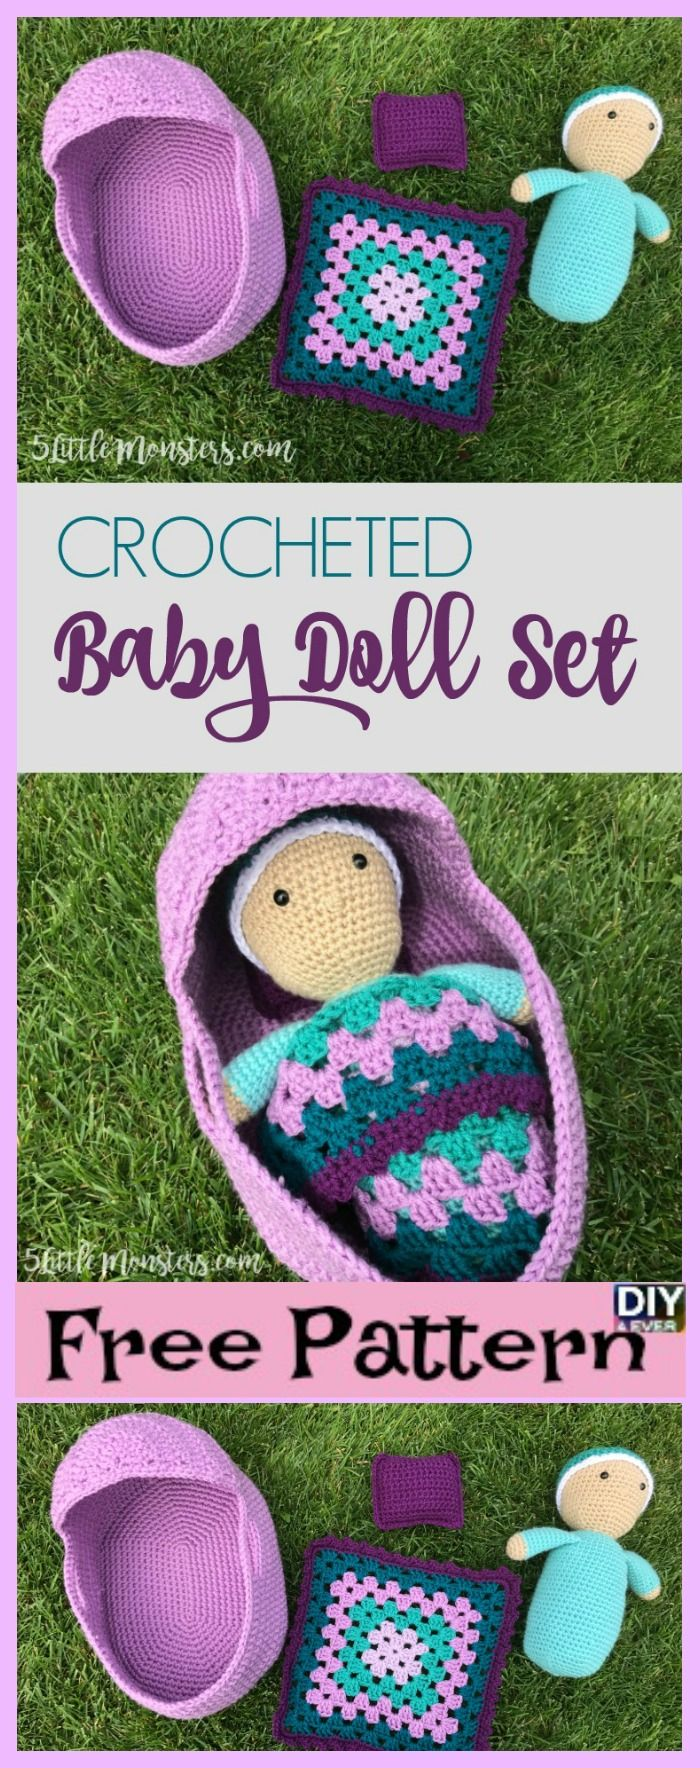 diy4ever- Crocheted Baby Doll Set Free Pattern Video #freepattern